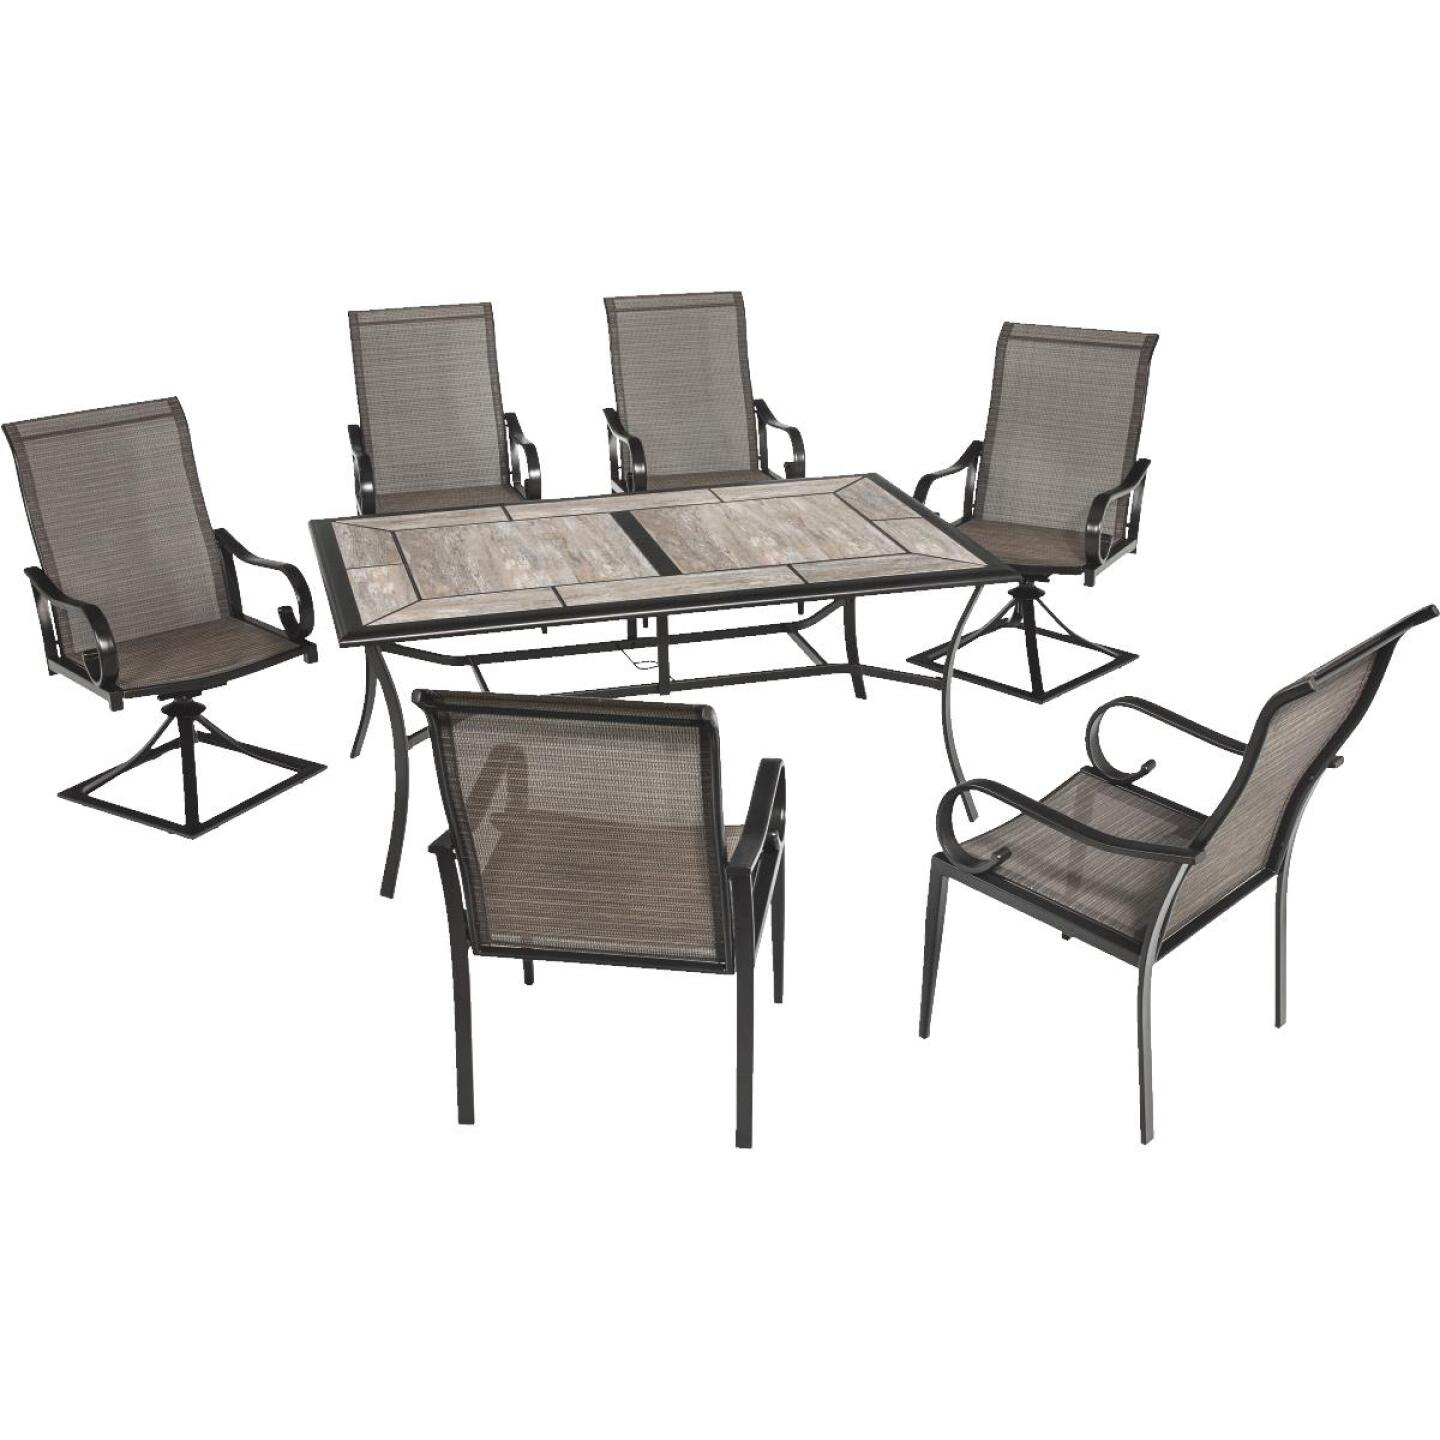 Outdoor Expressions Berkshire 7-Piece Dining Set Image 166